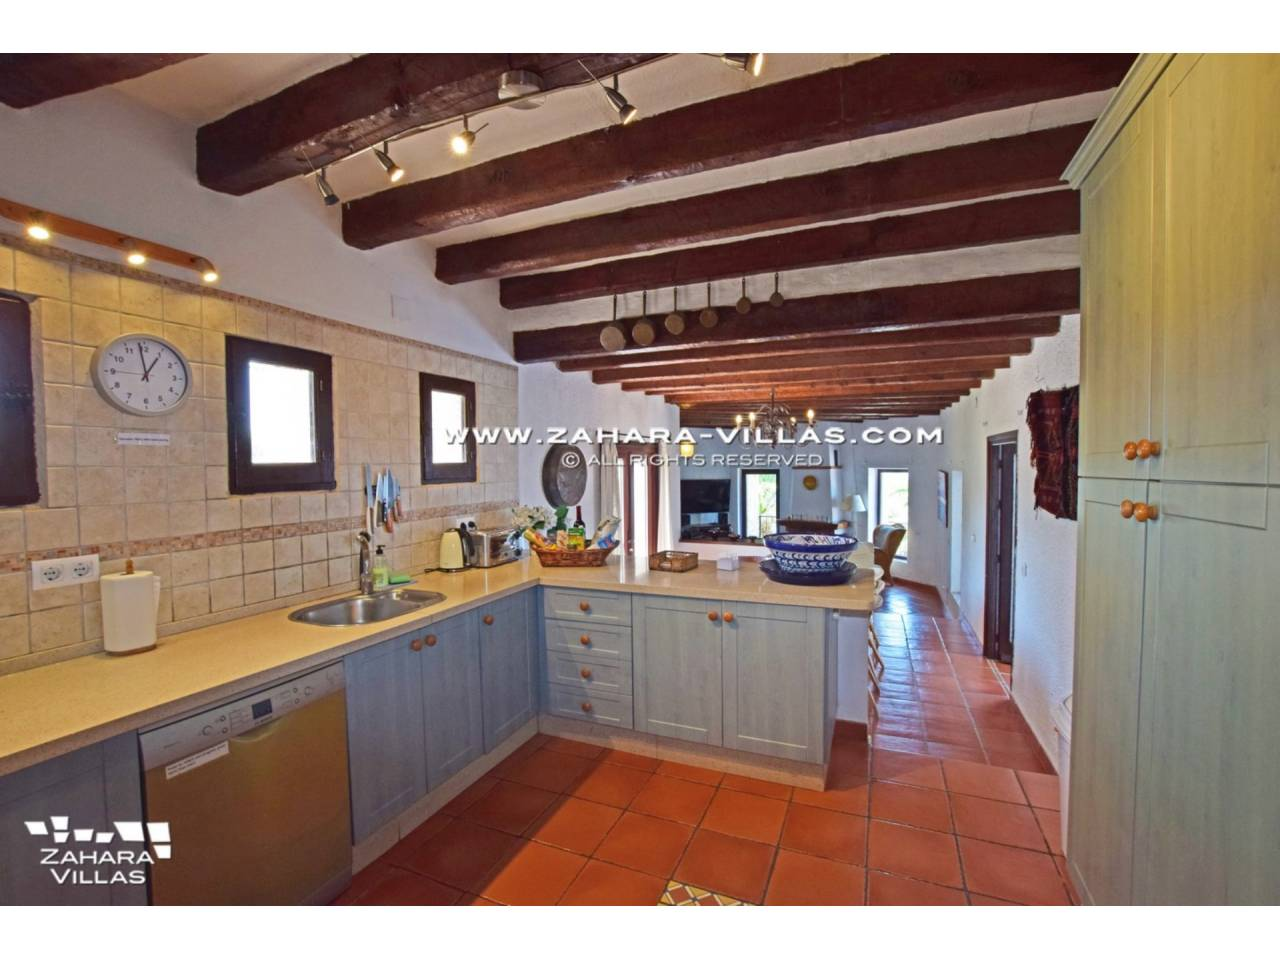 Imagen 26 de Wonderful Villa for sale in Atlanterra-Zahara de los Atunes